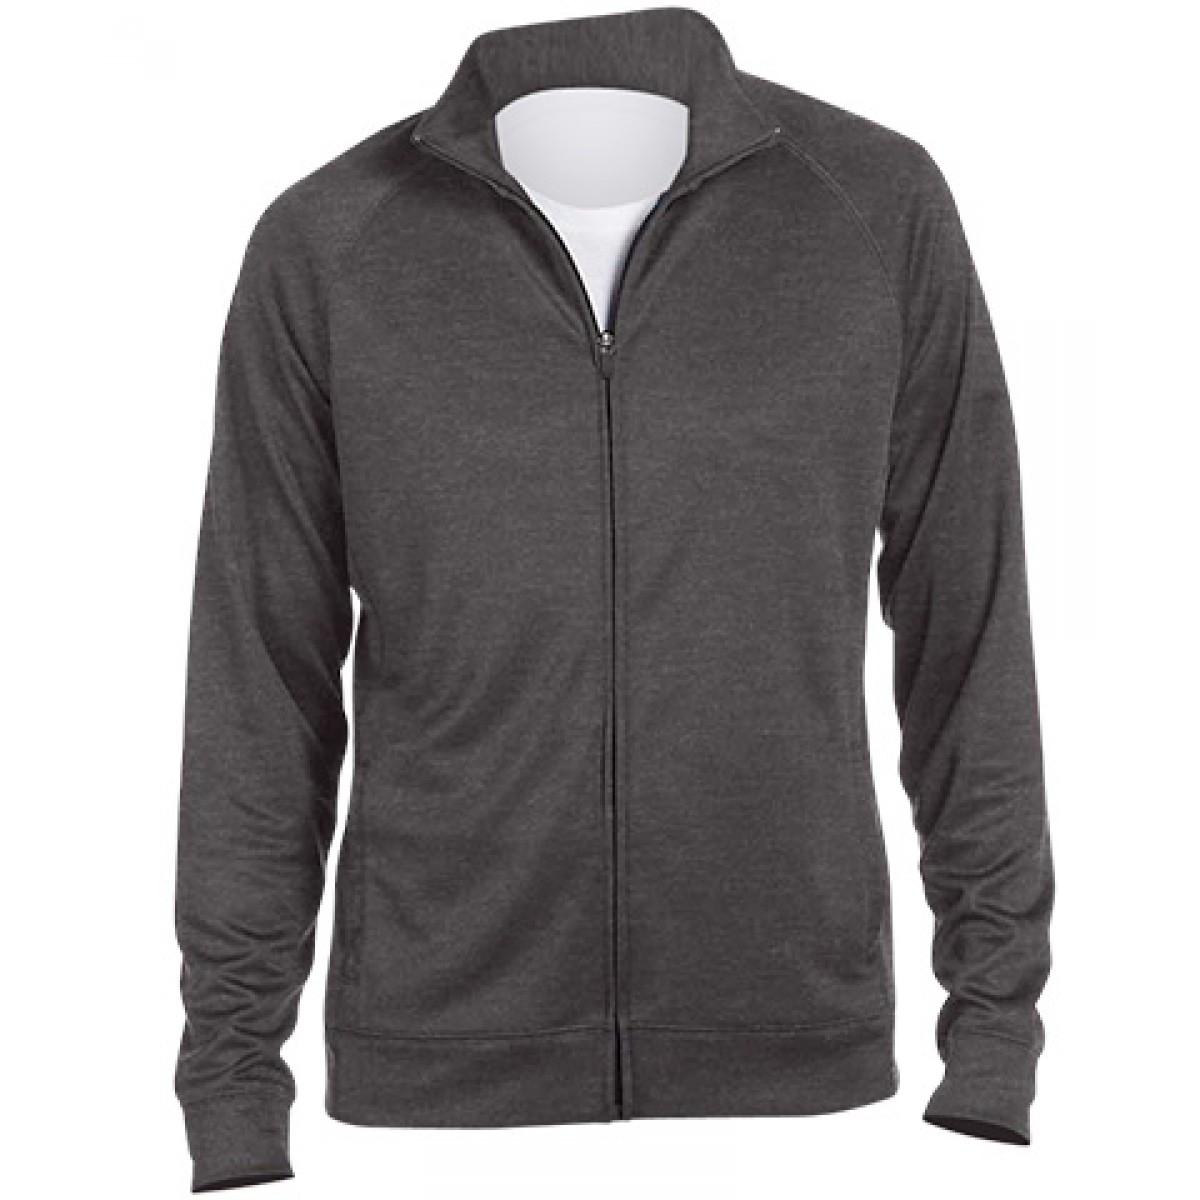 Full Zip Grey Lightweight Sports Jacket